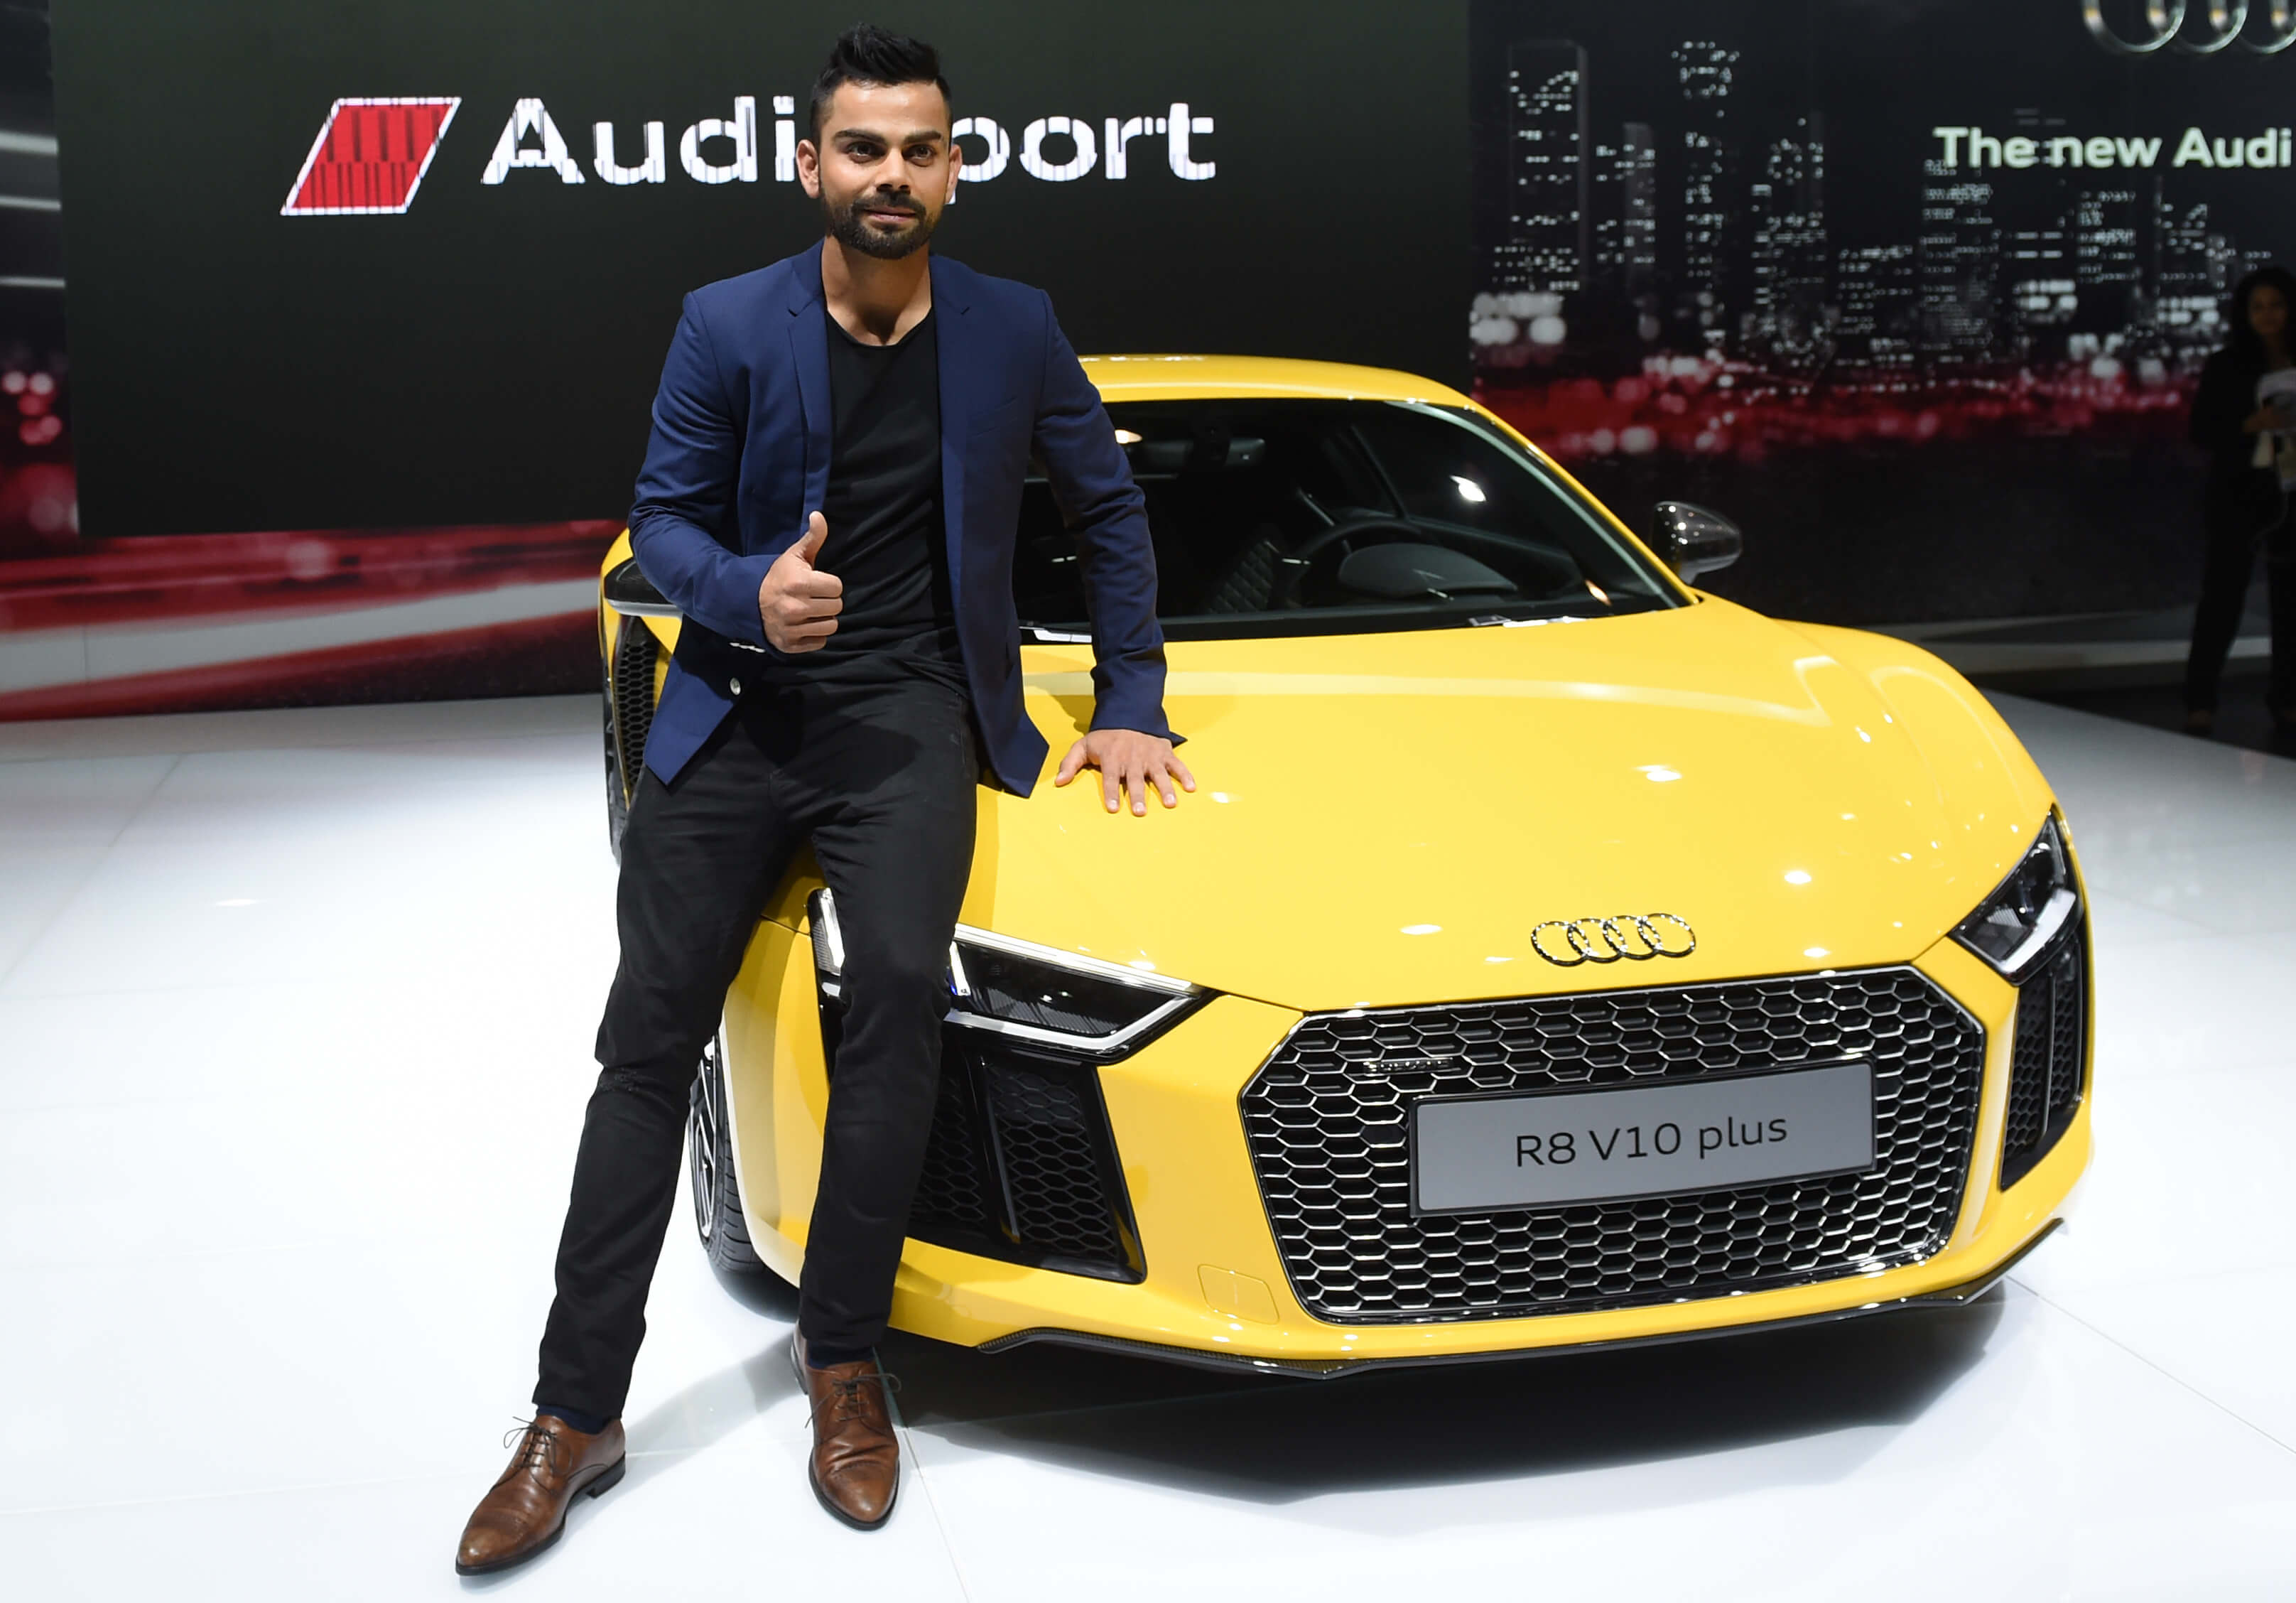 Ms dhoni net worth and earning with cars images a sports news - Sajjad Hussain Afp